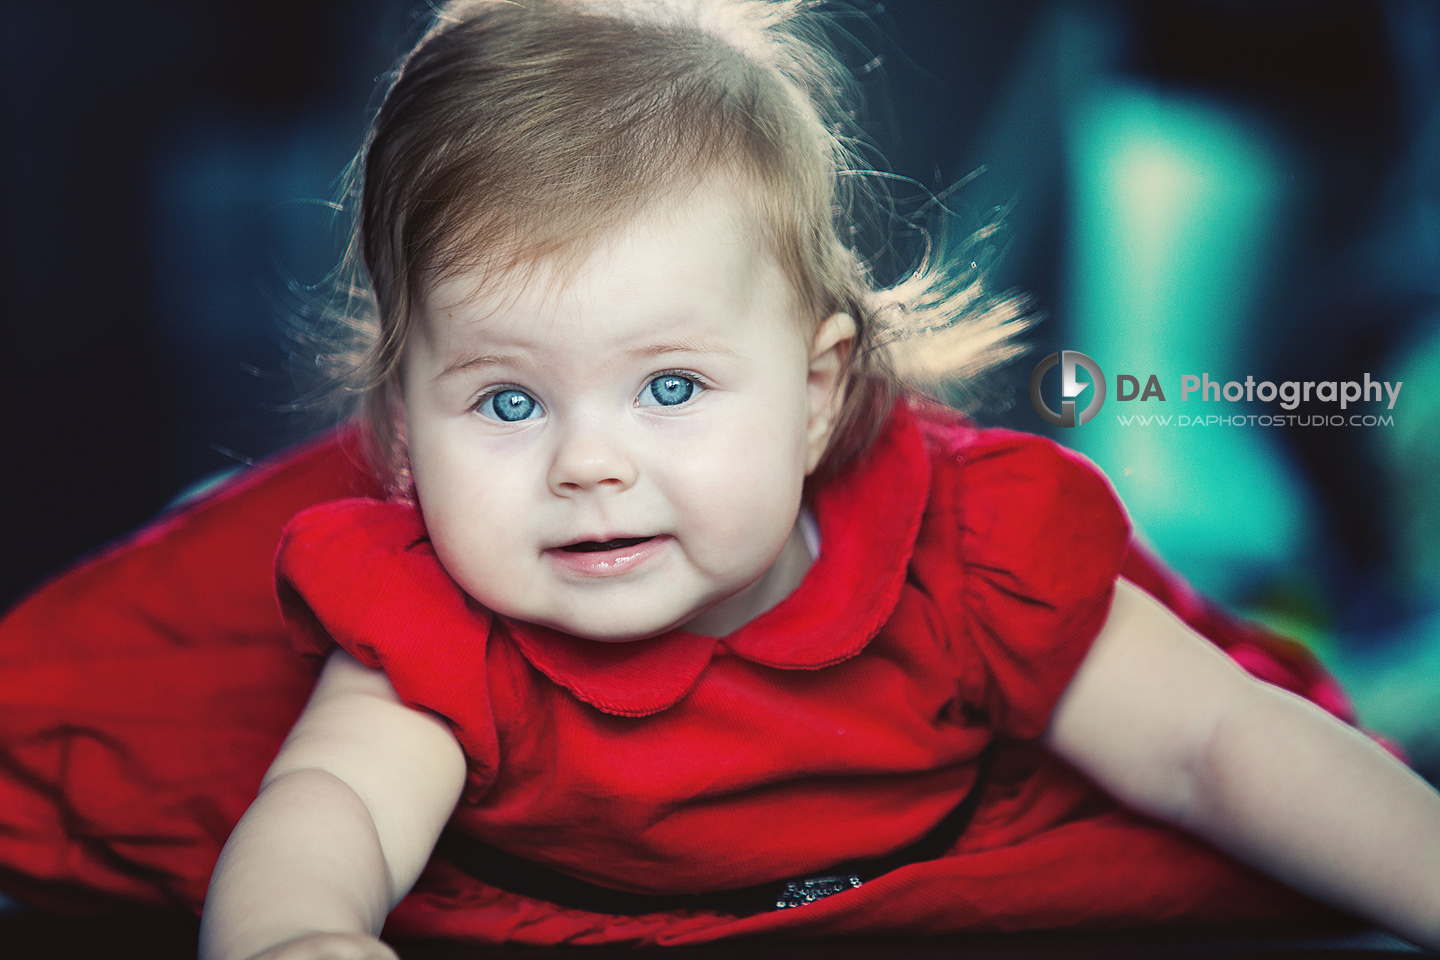 Baby blue eyes - Children Photographer